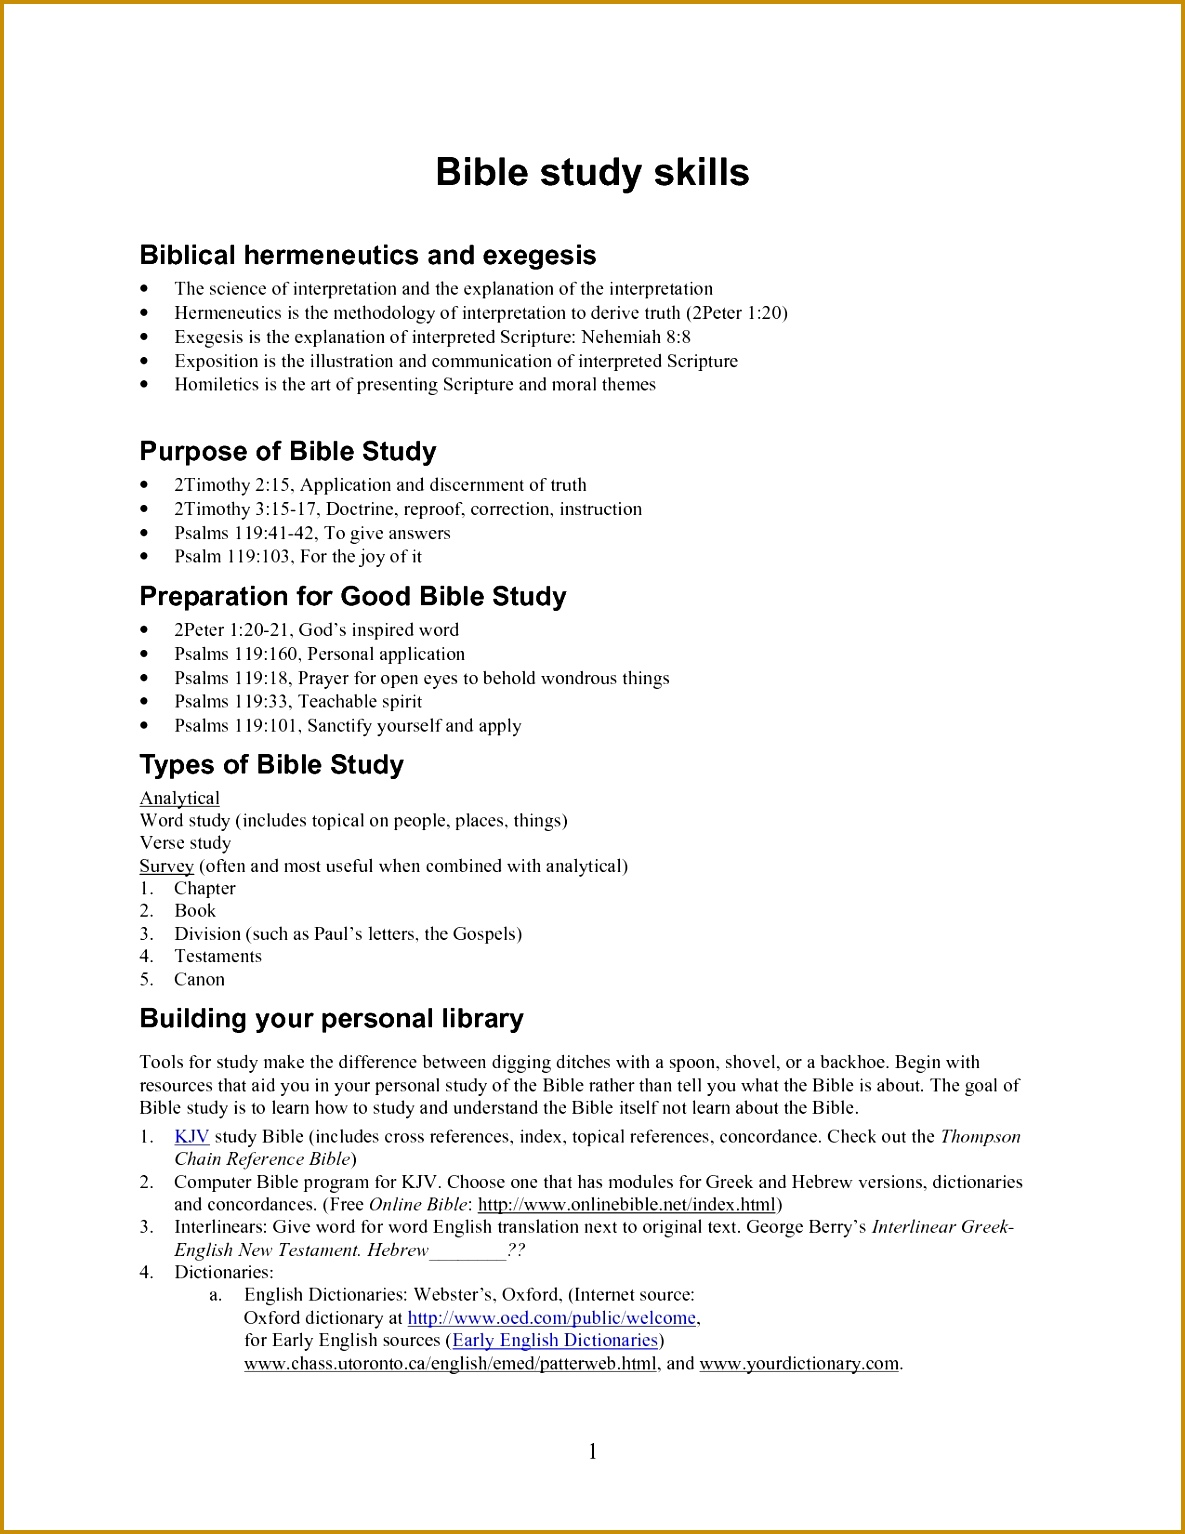 bible dictionary project template essay High school essay templates and formats free essay template high school essay examples include a variety of short essays such as the narrative essay, persuasive essay and analytical essay and more narrative essay project proposal education historical event cause and effect.